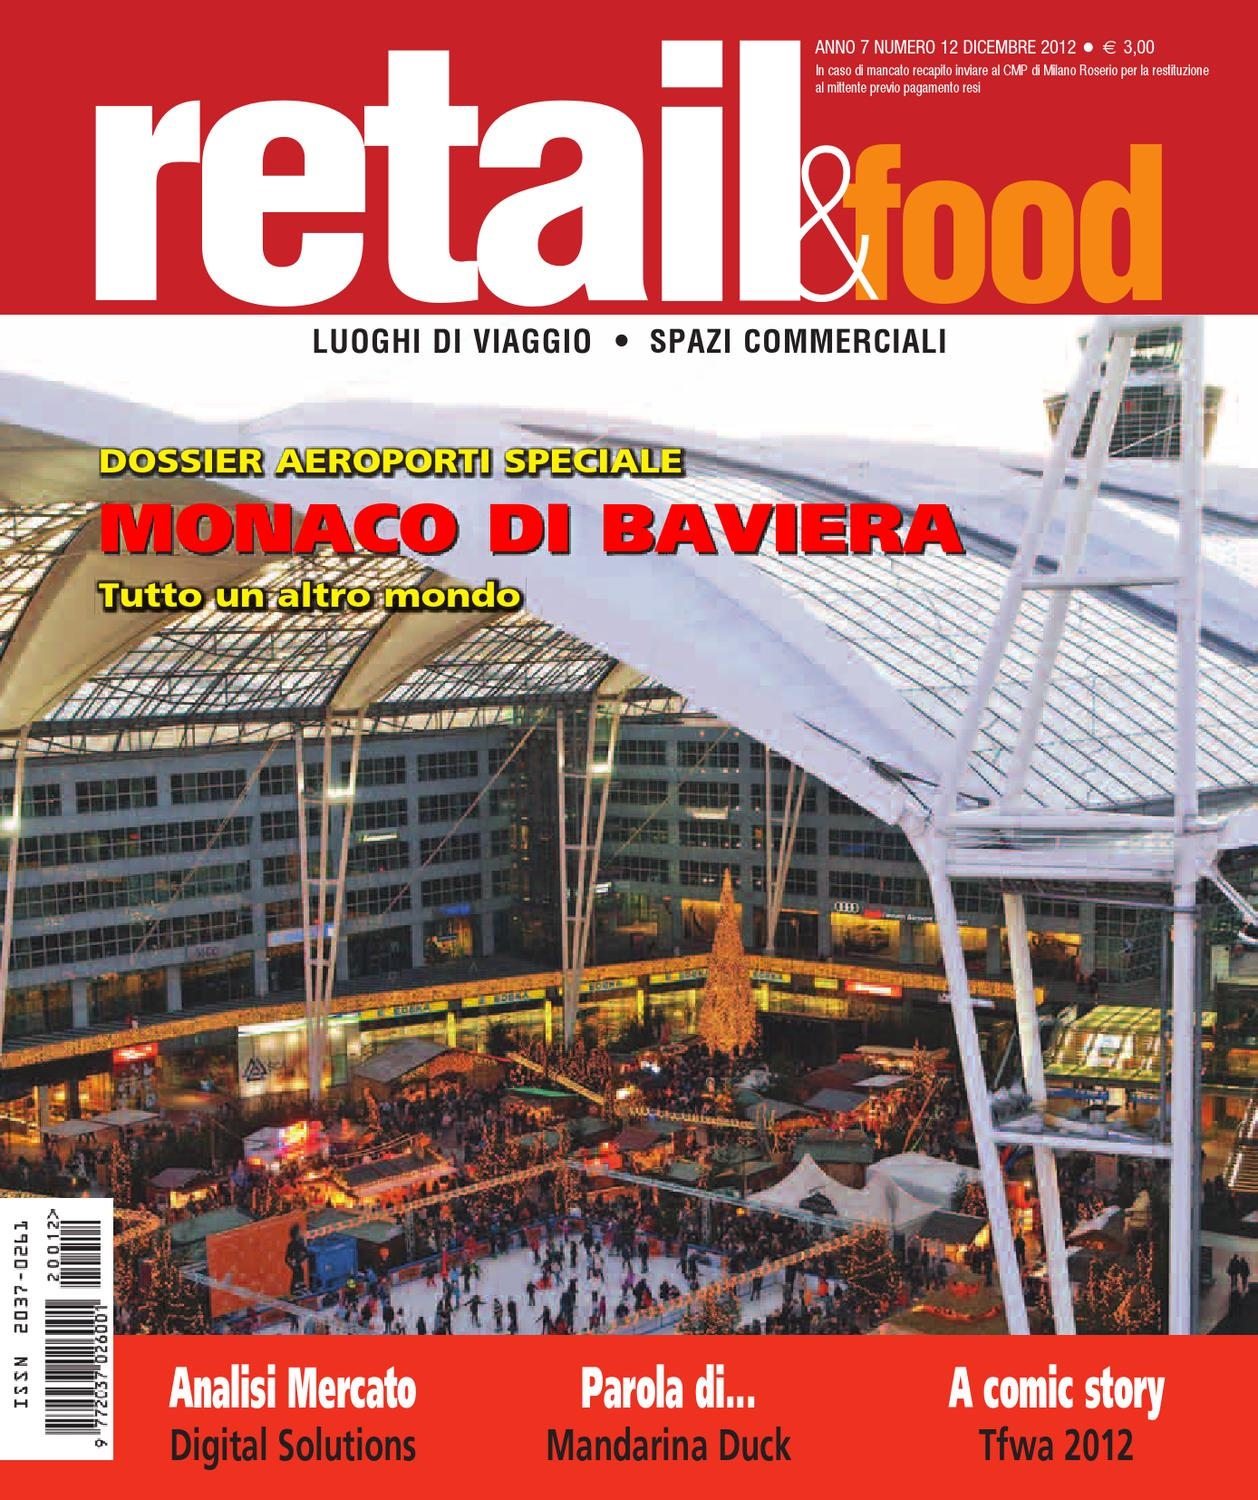 new concept 7f72f 893ce retail food 2012 12 by Edifis - issuu